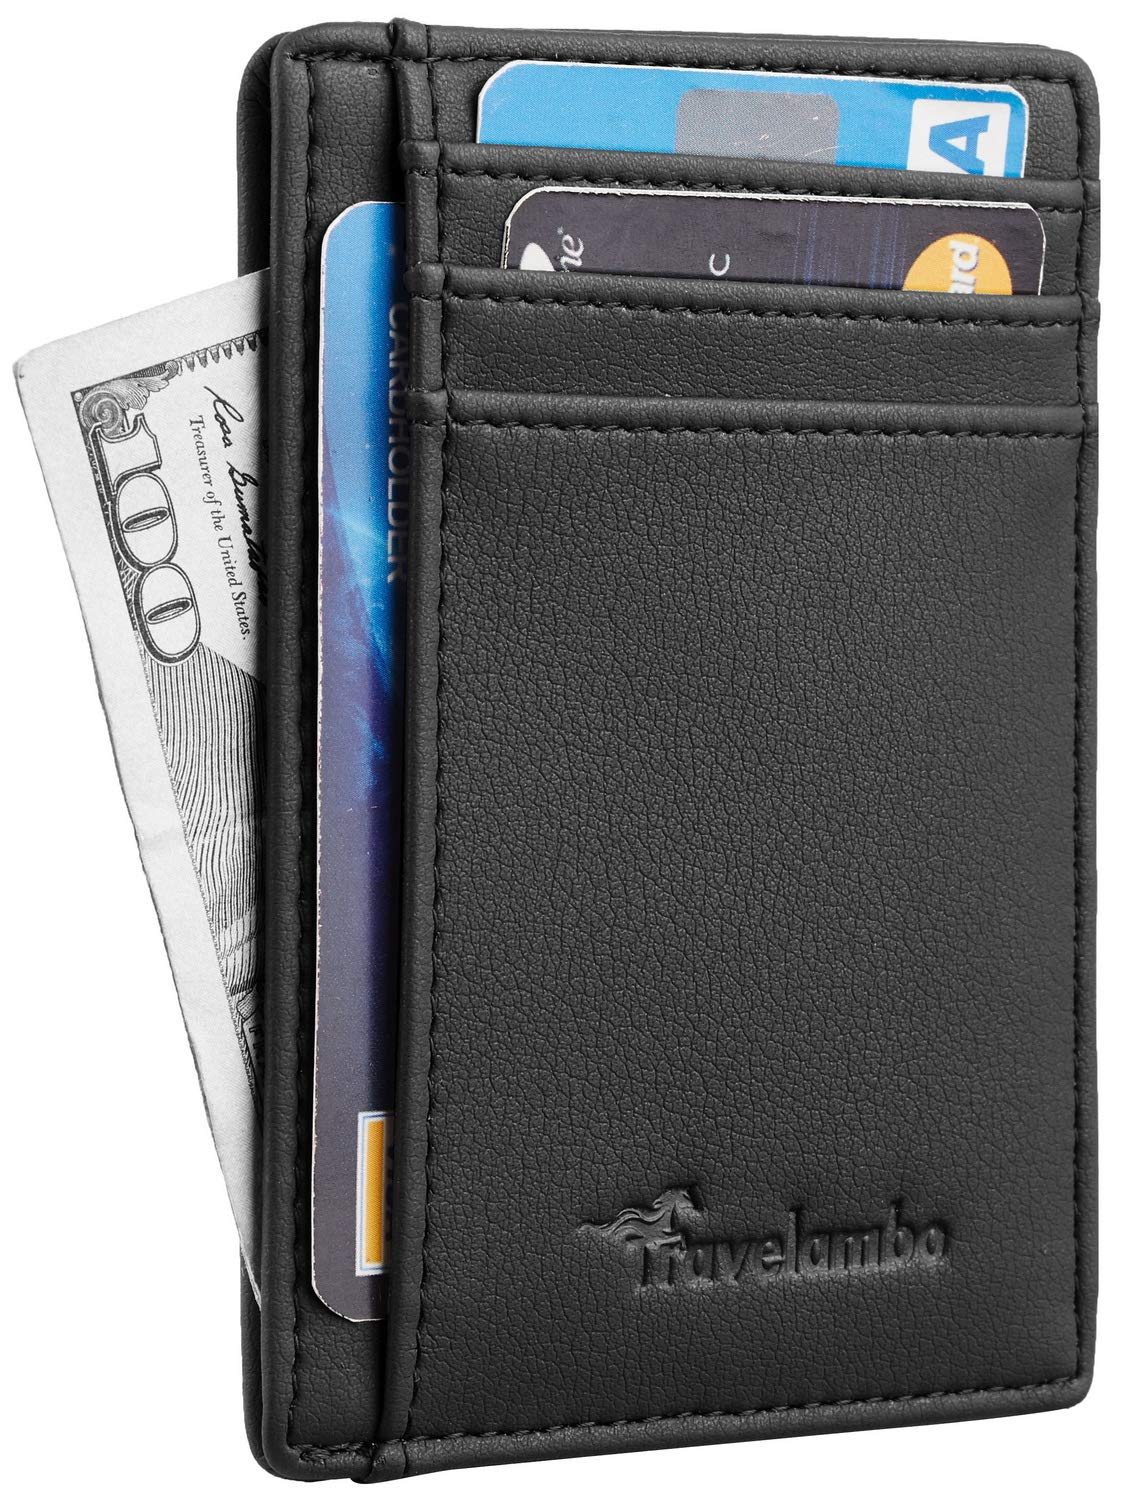 Travelambo Front Pocket Wallet Minimalist Wallets Leather Slim Wallet Money Clip RFID Blocking(Vintage Black) tra140